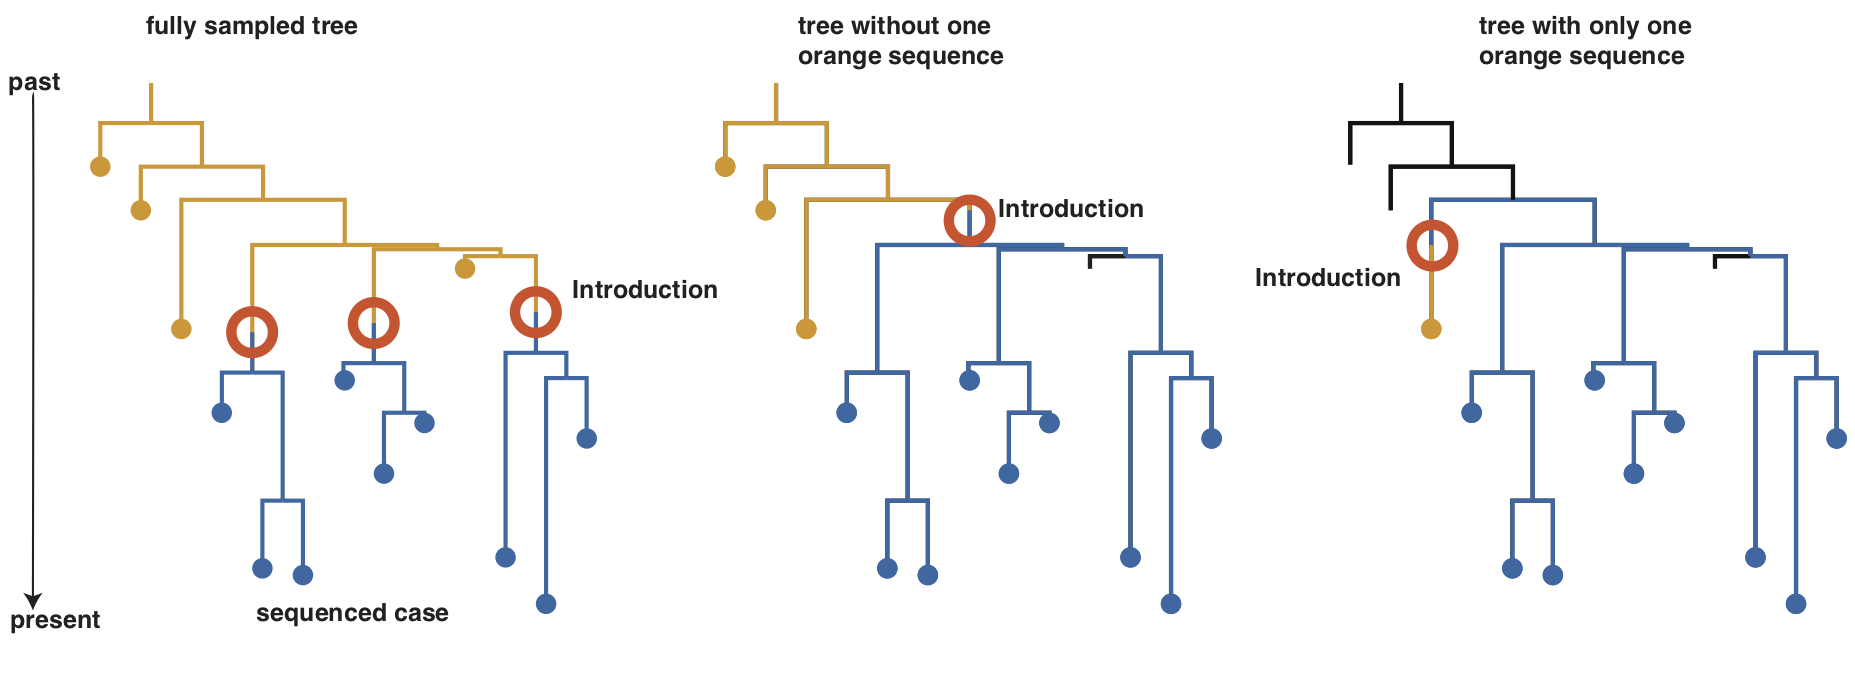 Parts of a phylogenetic tree